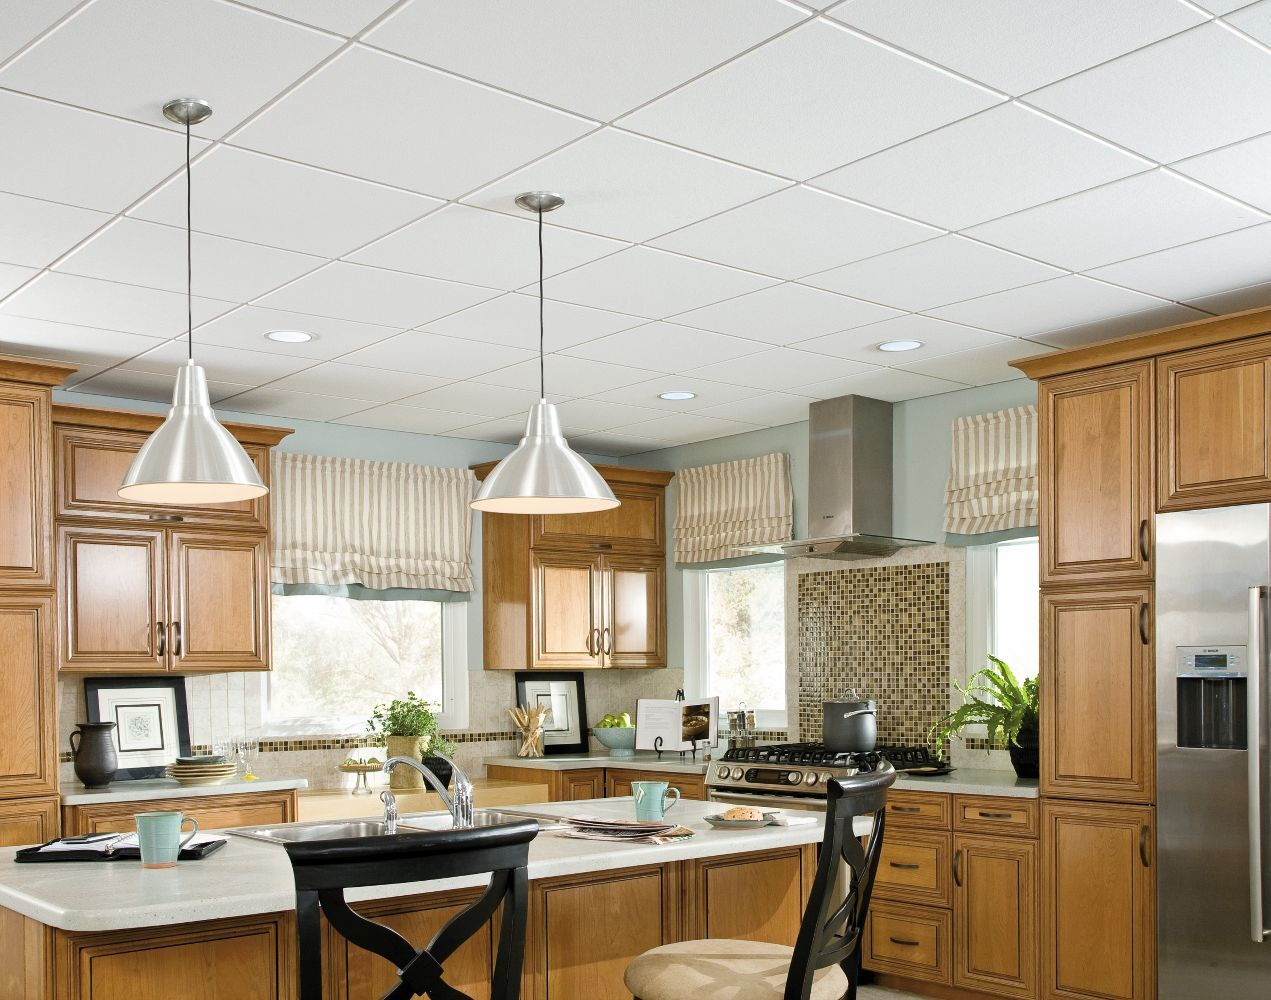 1231 brightex with airguard is a paintable ceilings by armstrong 1231 brightex with airguard is a paintable ceilings by armstrong create a dailygadgetfo Choice Image